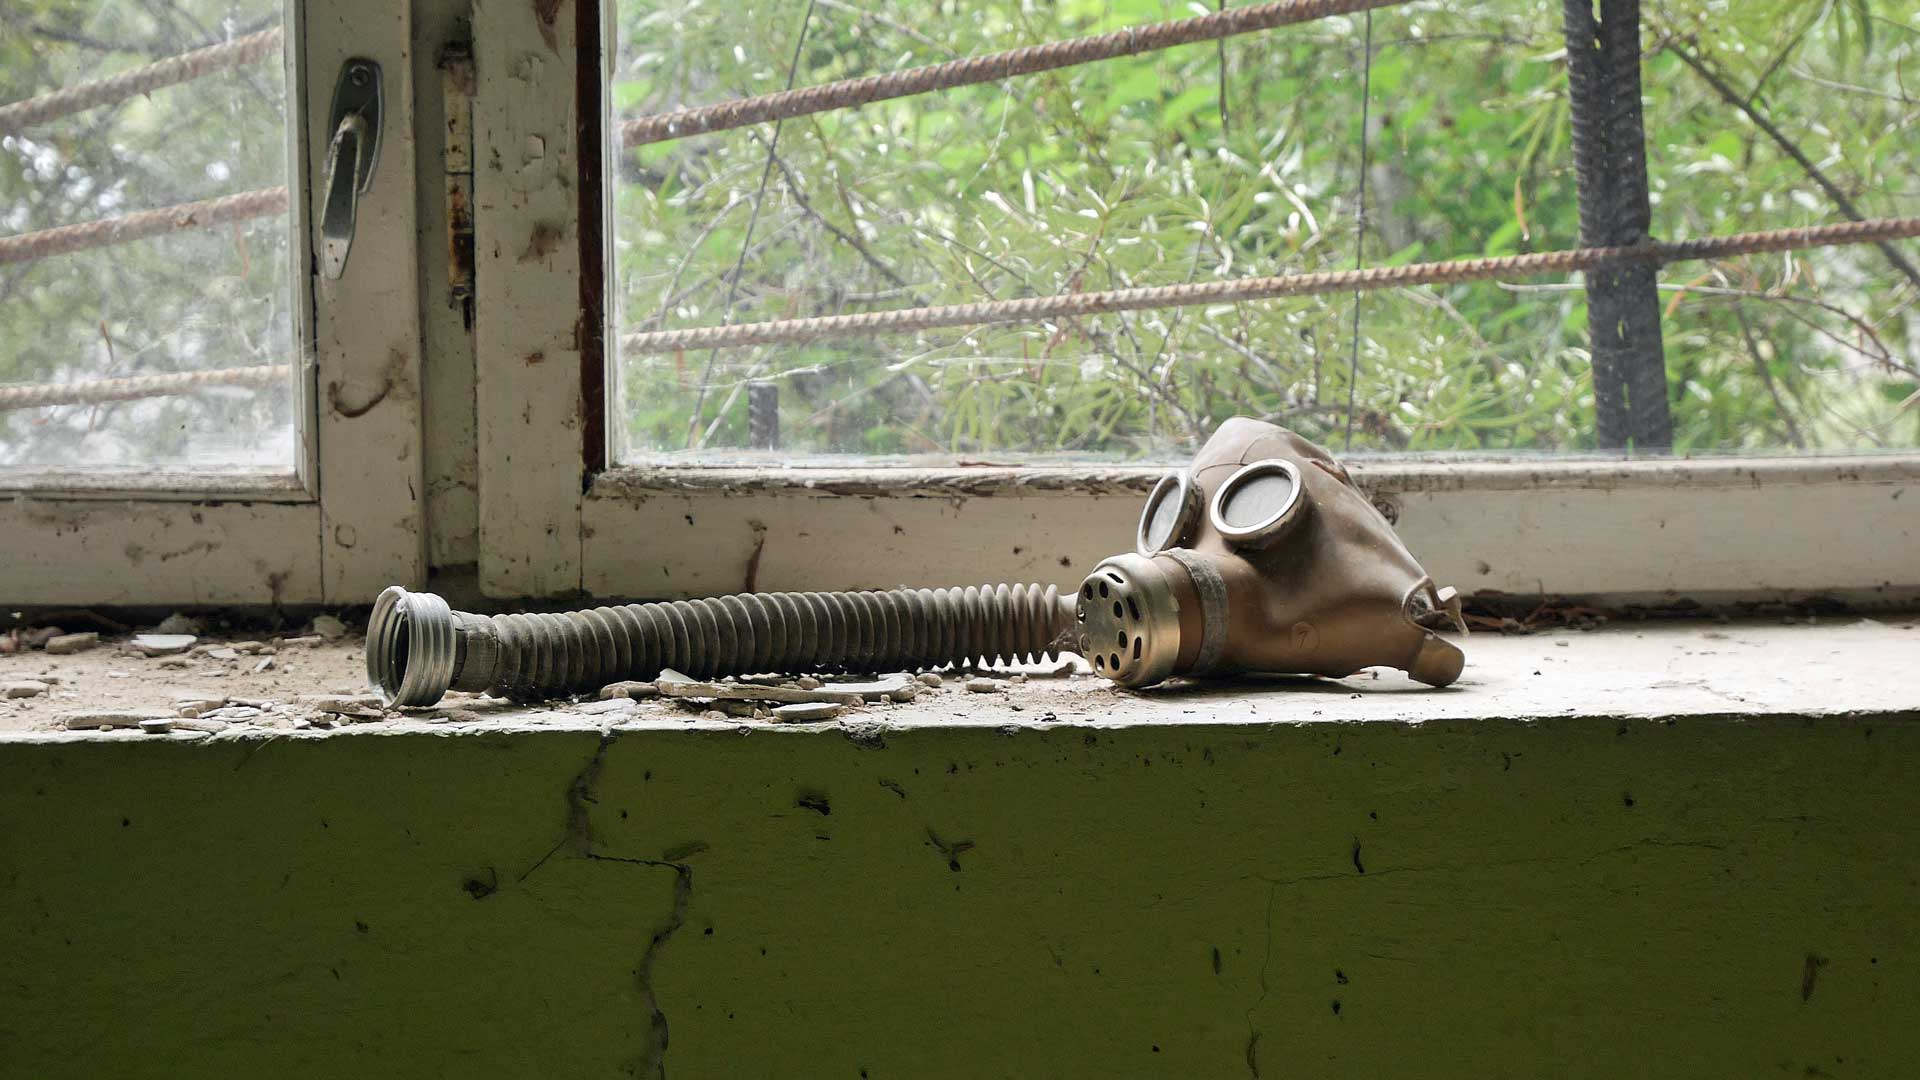 chernobyl-abandoned-research-laboratory-3